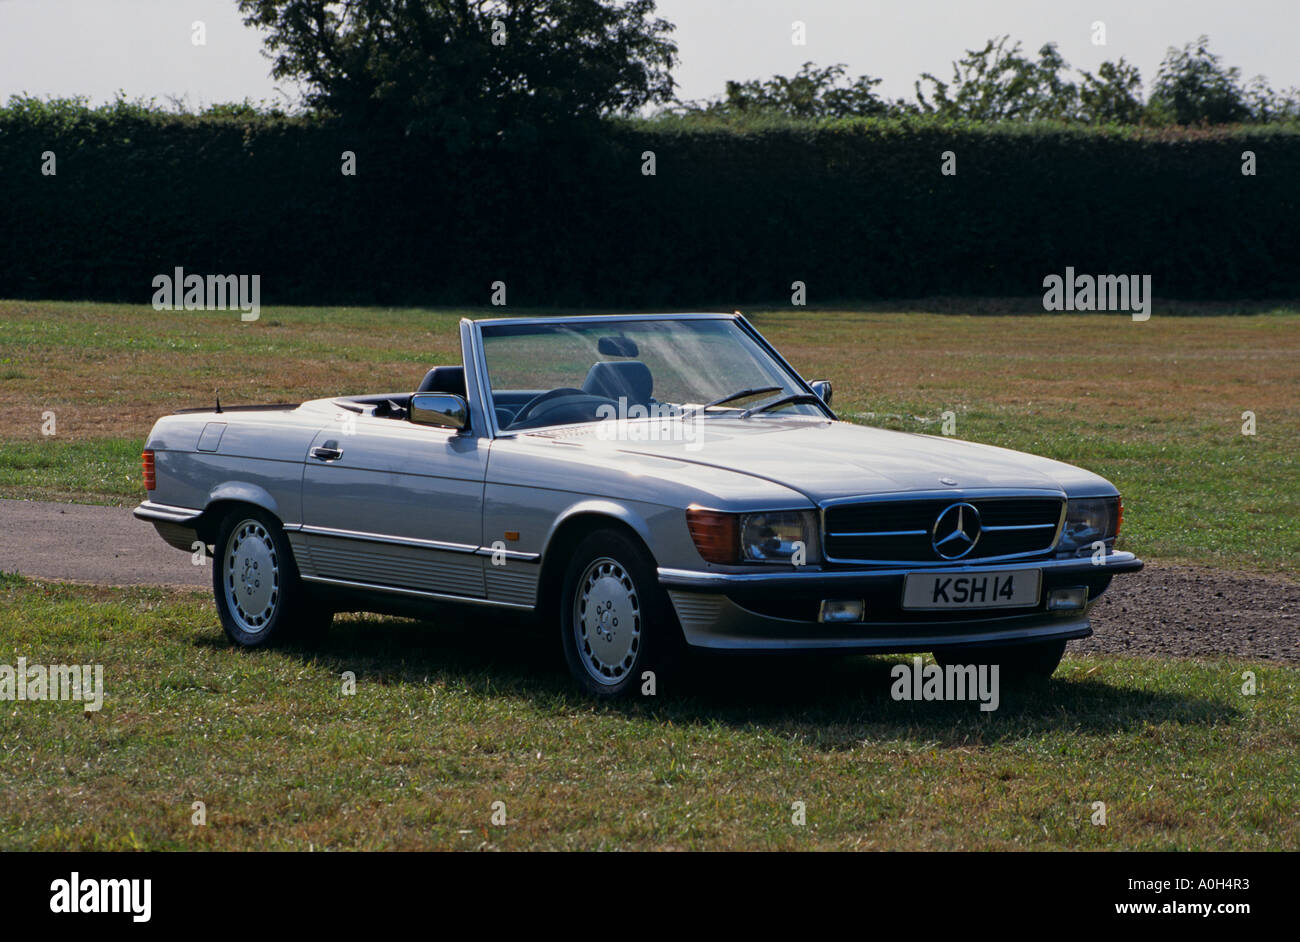 mercedes benz sl 1970 to 1989 500sl r107 stock photo royalty free image 5711986 alamy. Black Bedroom Furniture Sets. Home Design Ideas